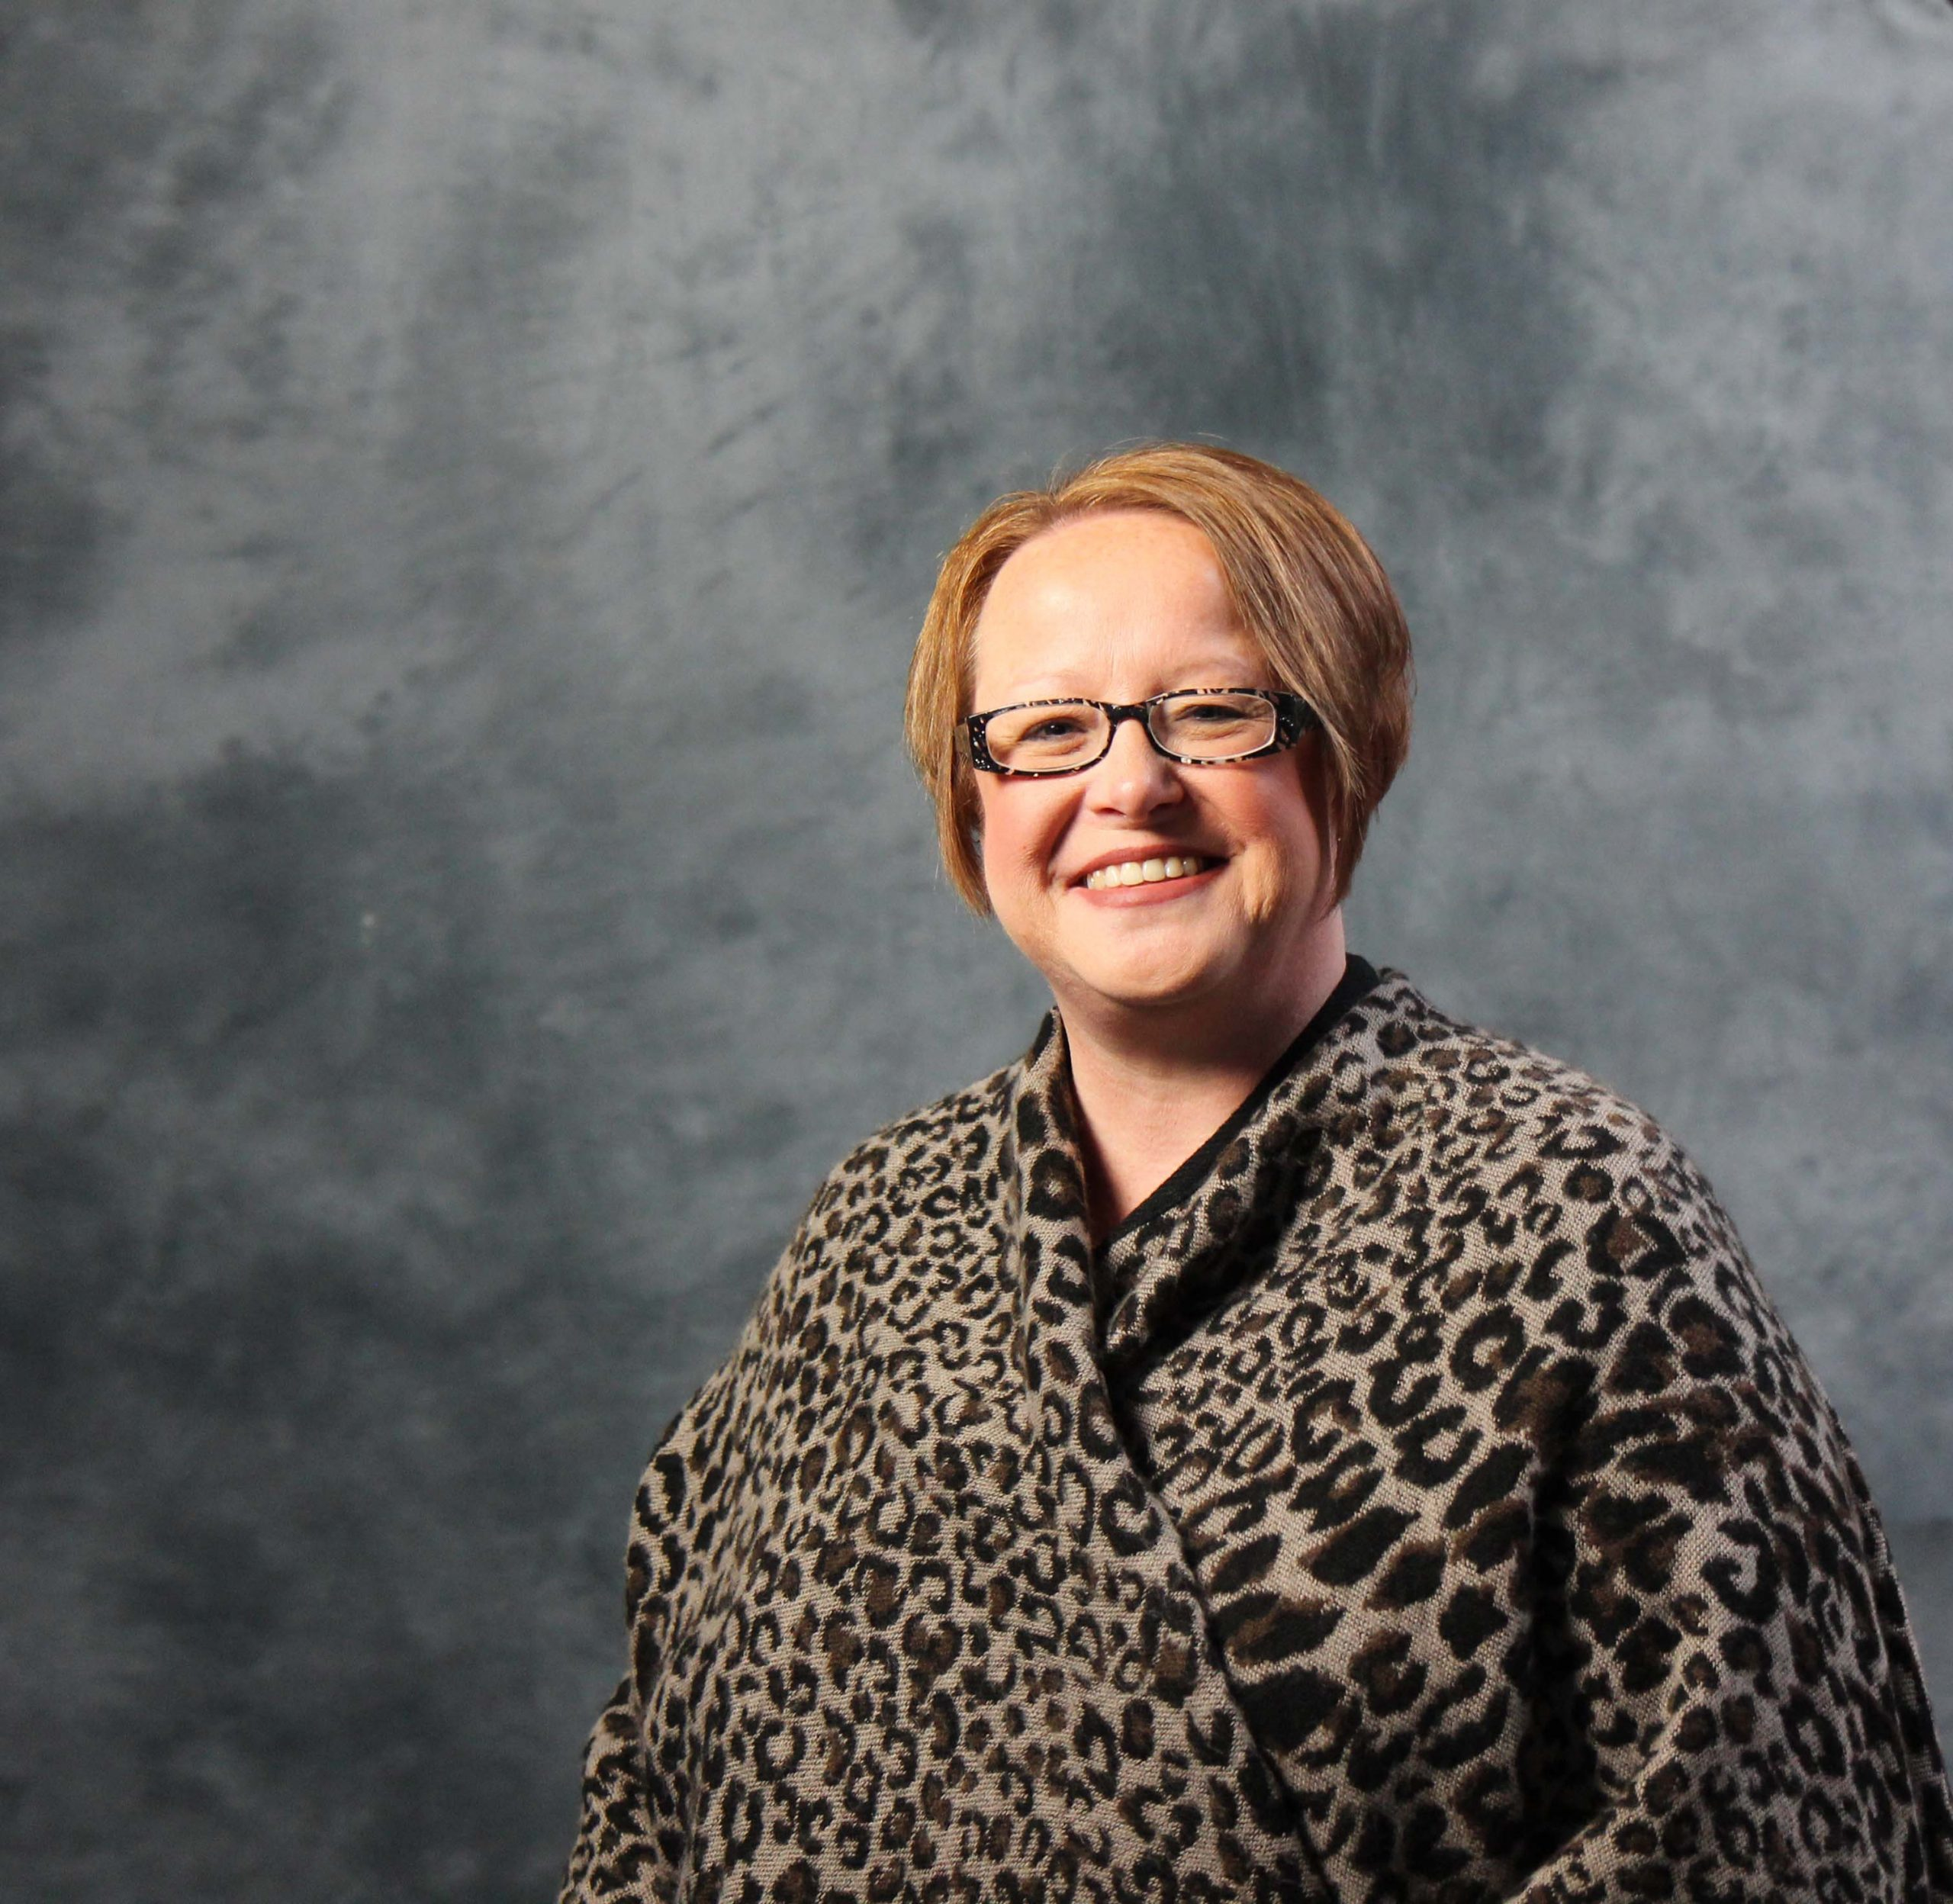 Lake Land College faculty member receives award from the Illinois Board of Higher Education